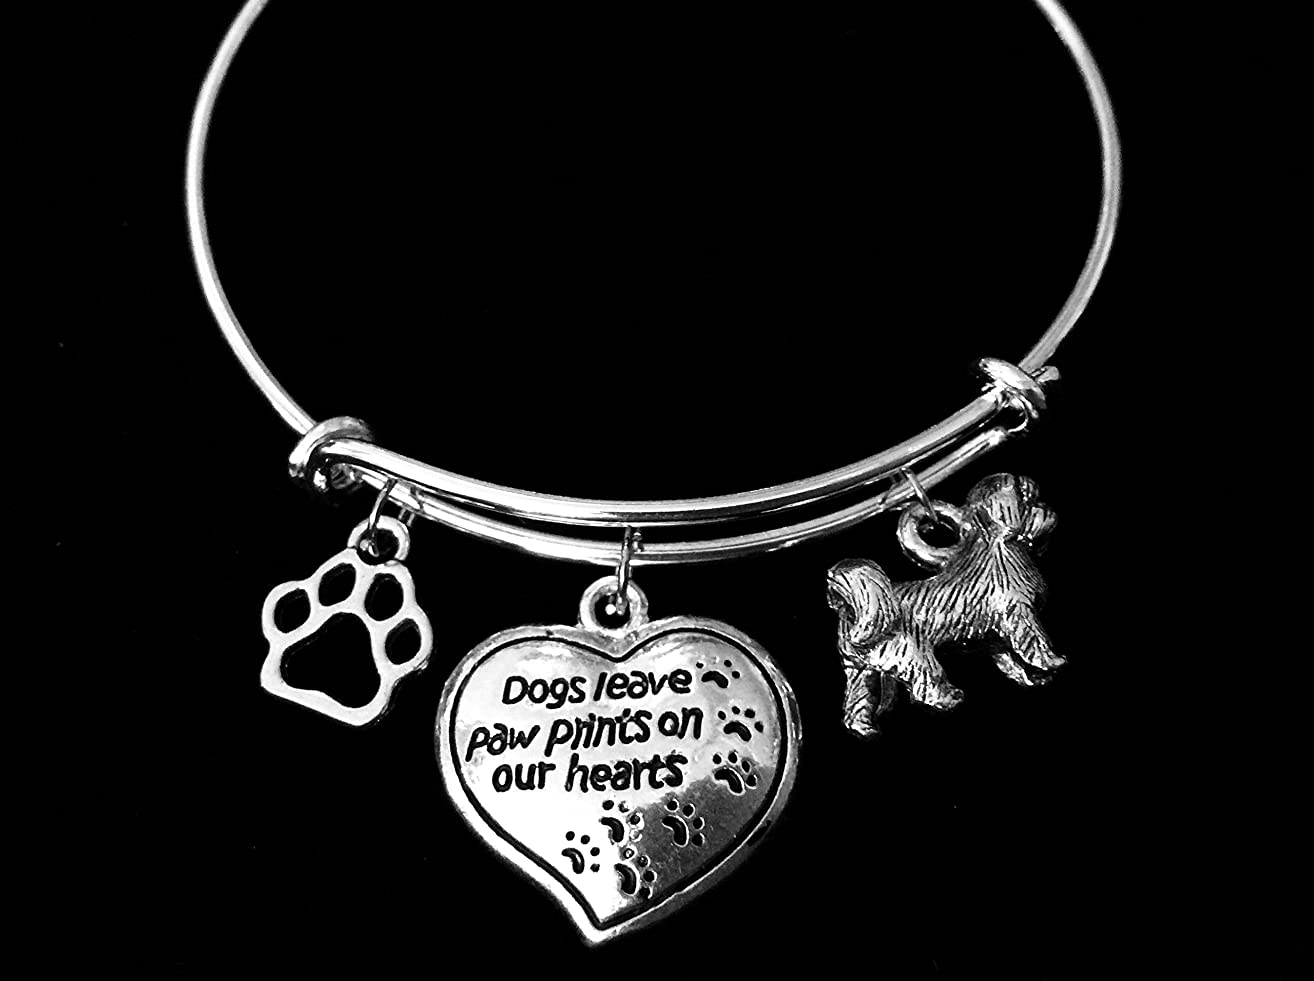 Shih Tzu Dogs Leave Paw Prints on Our Hearts Expandable SIlver Charm Bracelet Adjustable Bangle Pet Dog Bone Personalization Custom Options Available